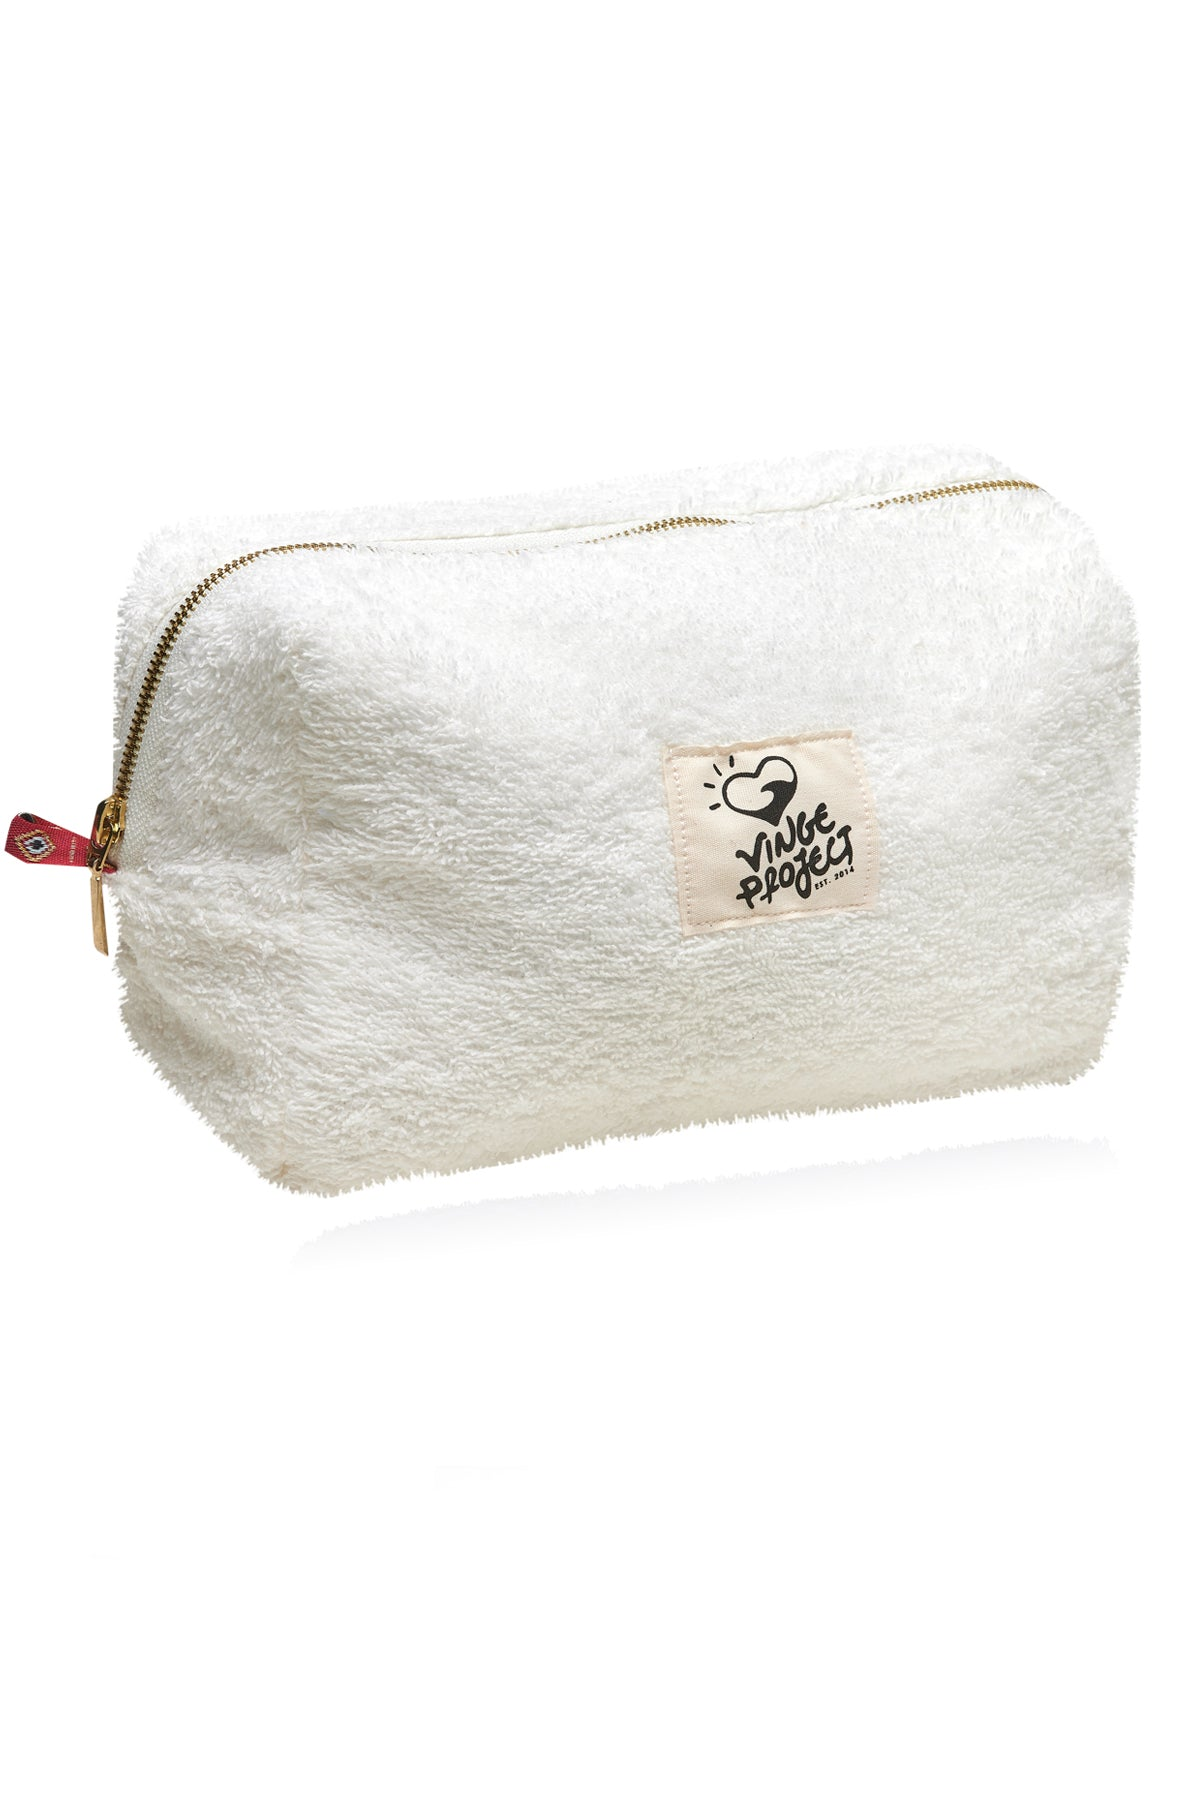 Vanilla 𝐗𝐋𝐚𝐫𝐠𝐞 Waterproof Cosmetic & Travel Pouch Bag